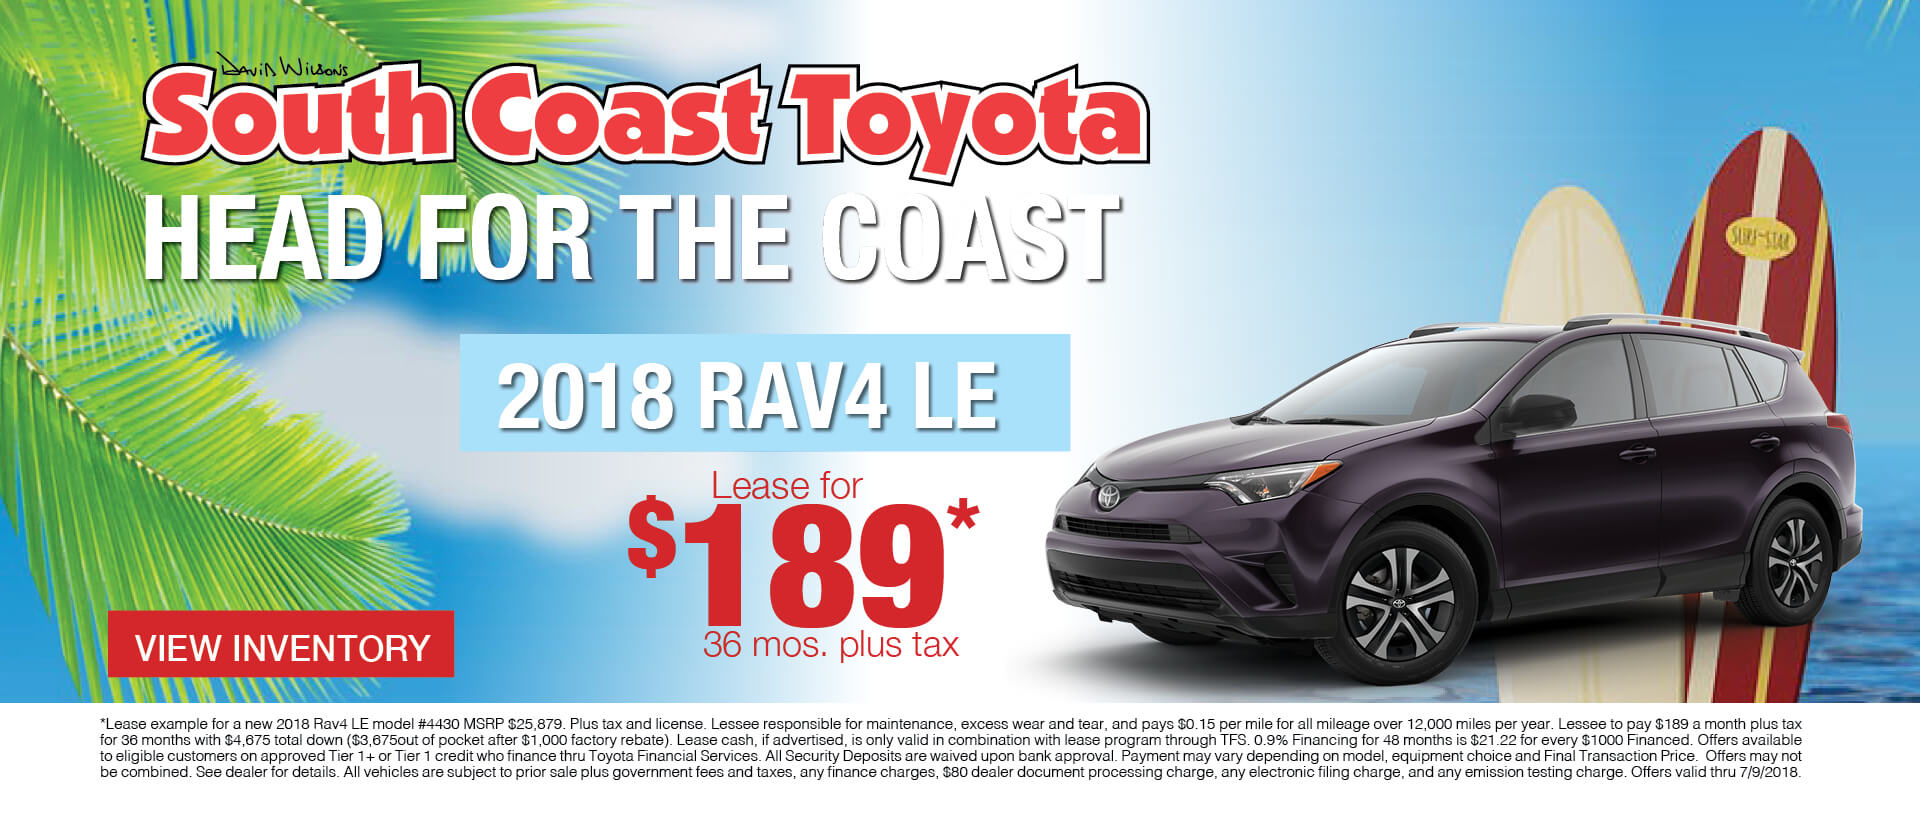 Memorial Day Toyota RAV4 $189 Lease